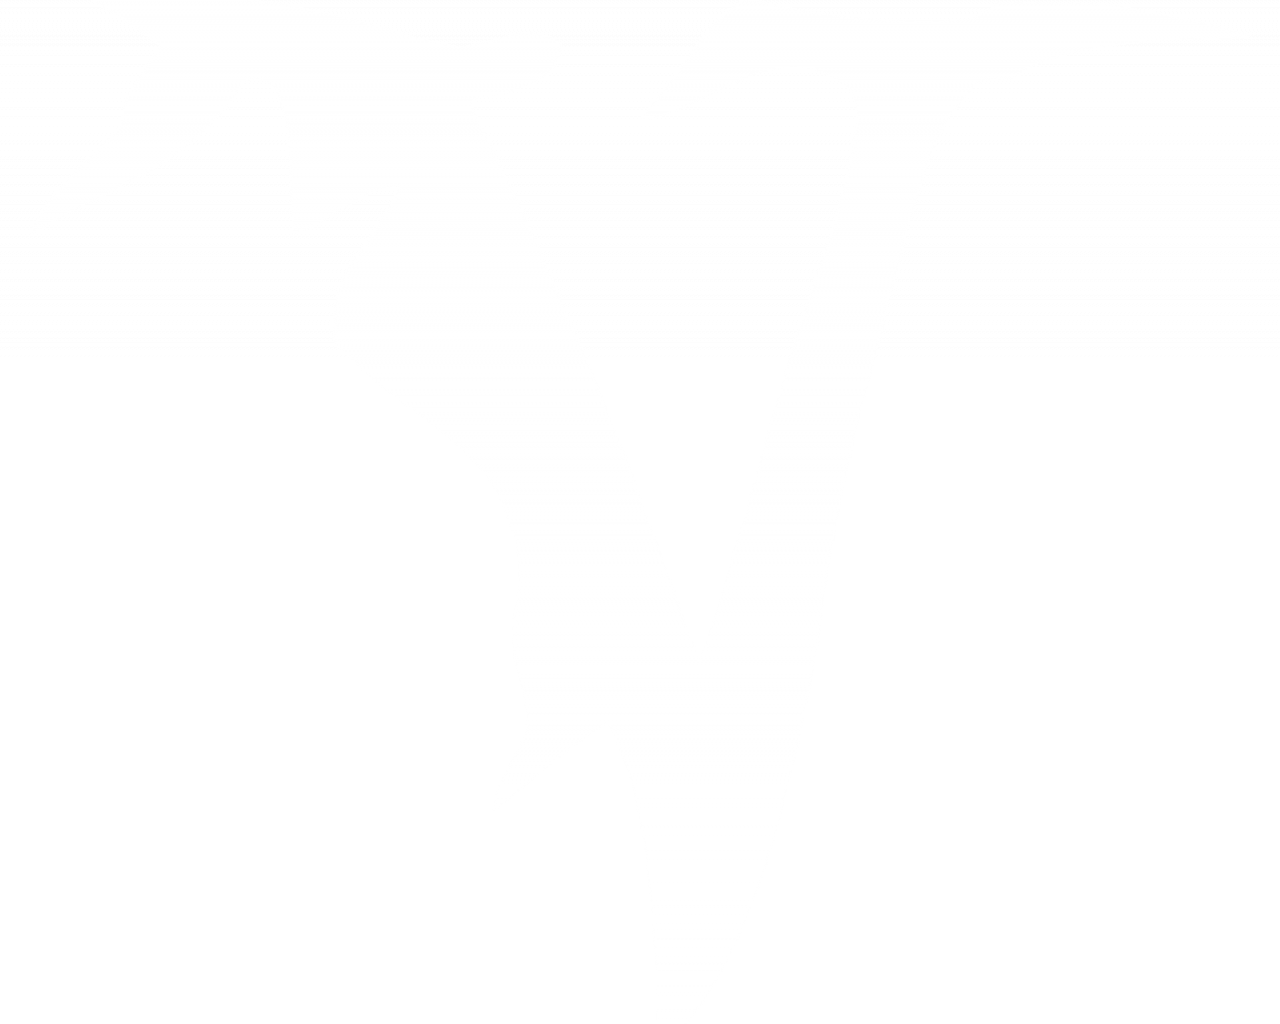 Free download Veil Of Maya Logo by LightsInAugust [1600x1412.